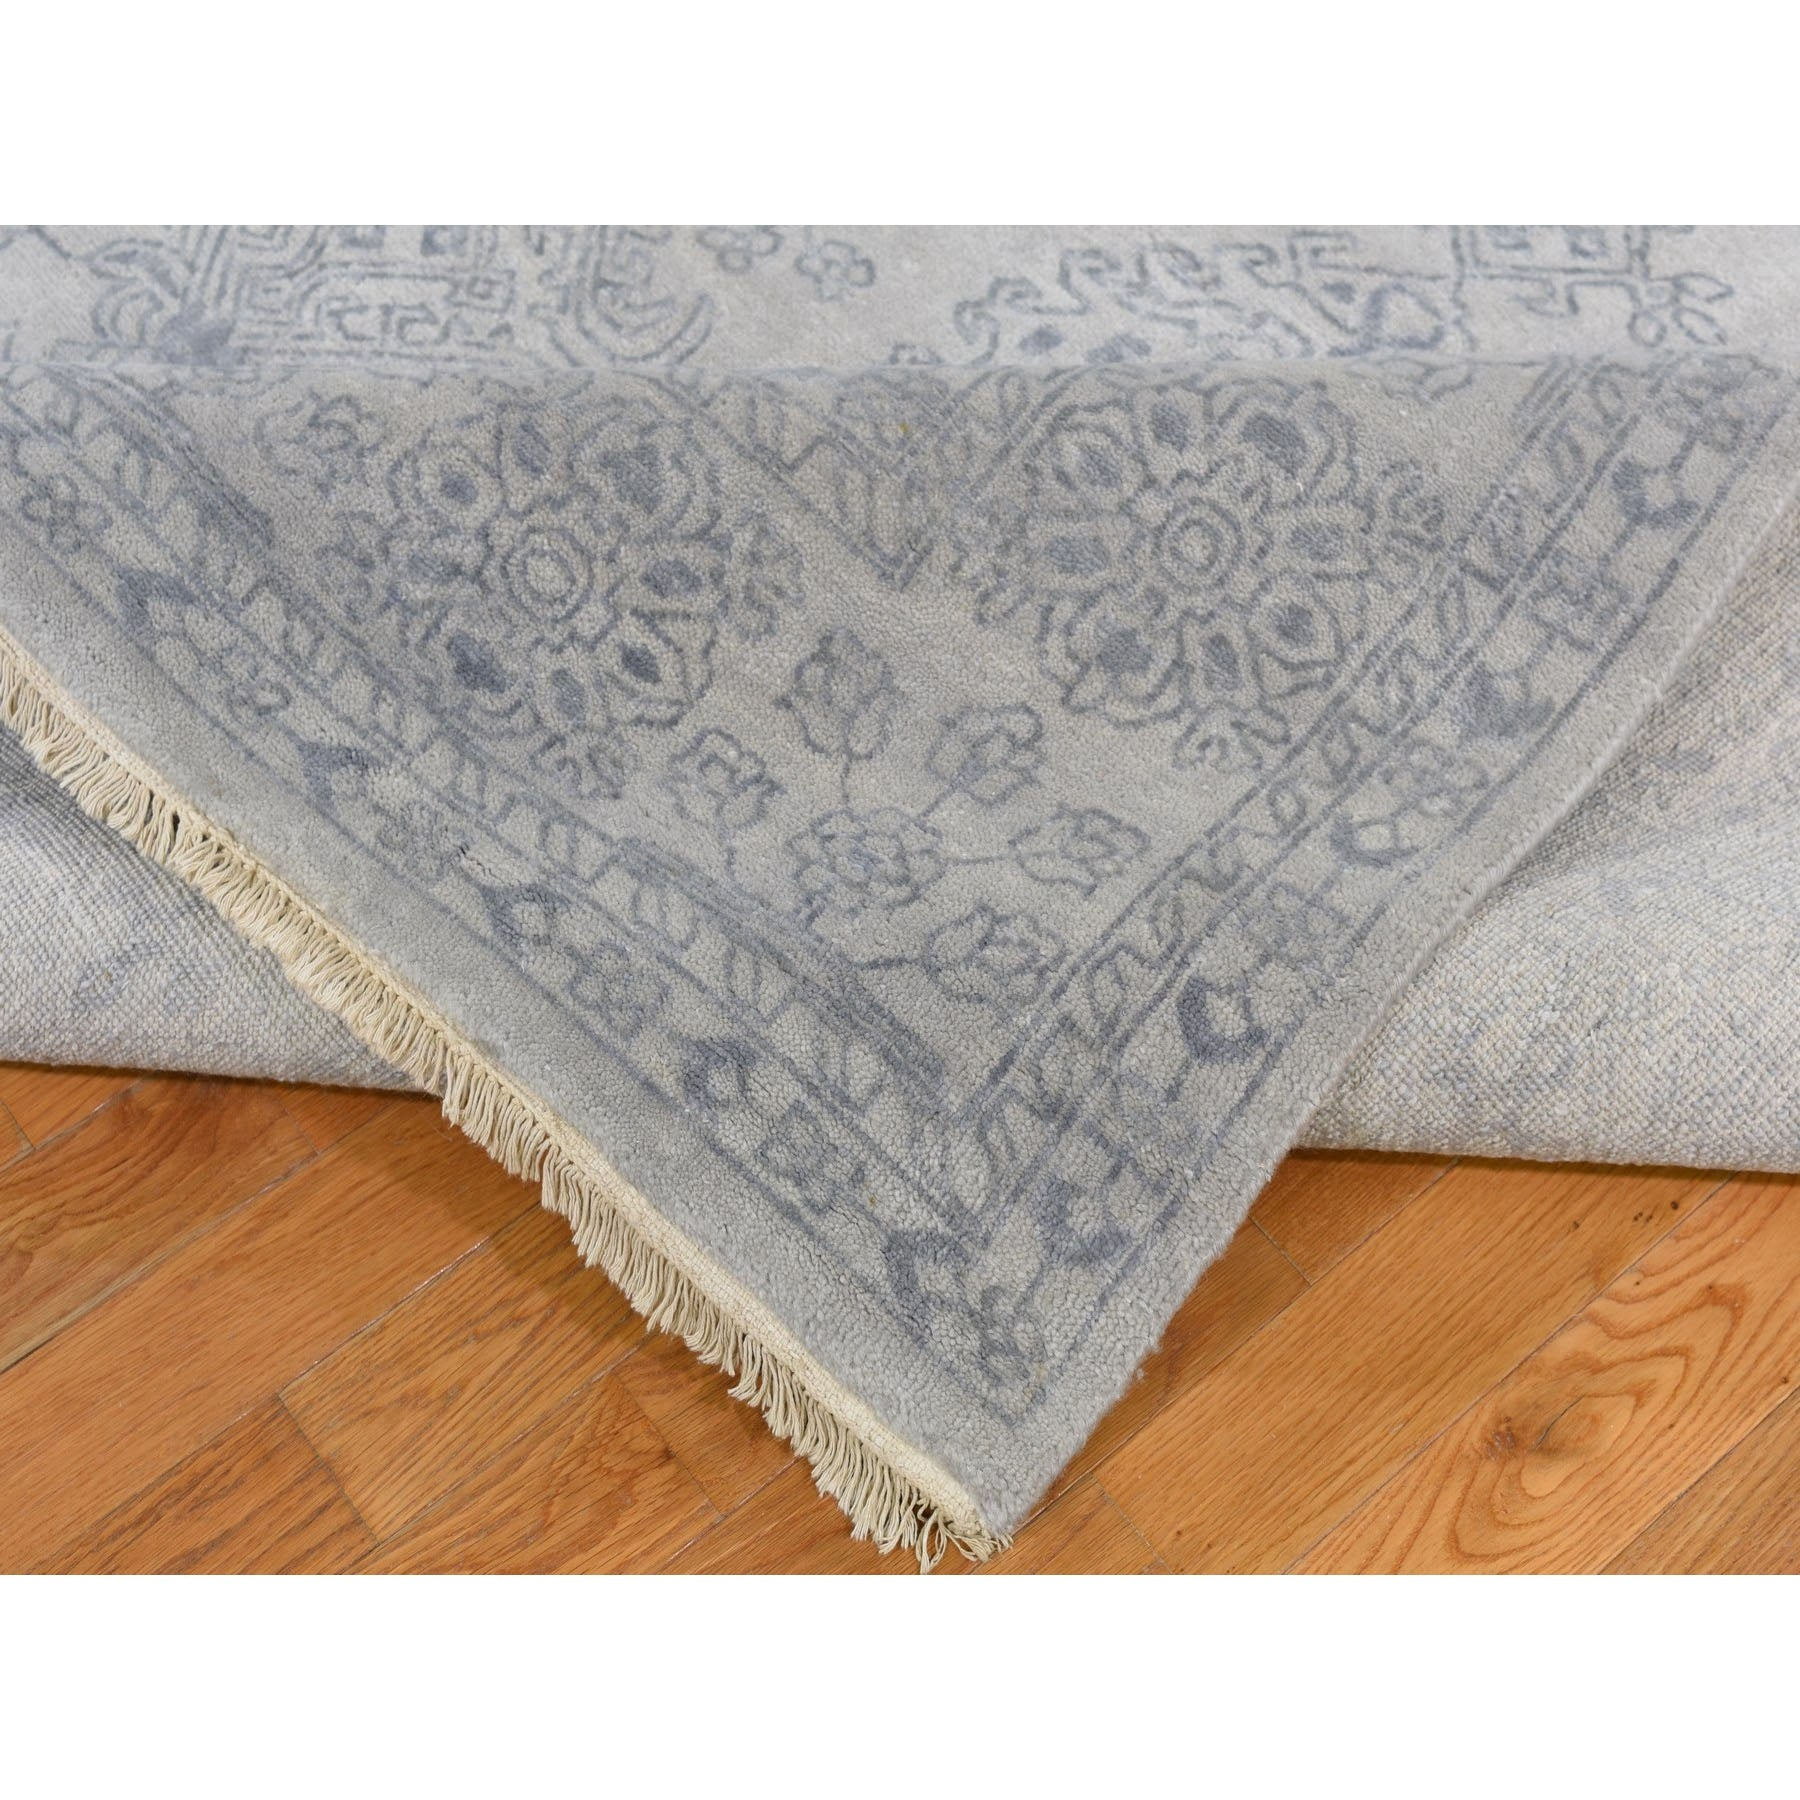 "Handmade Oushak And Peshawar Rectangle Rug > Design# SH47219 > Size: 8'-9"" x 11'-10"" [ONLINE ONLY]"